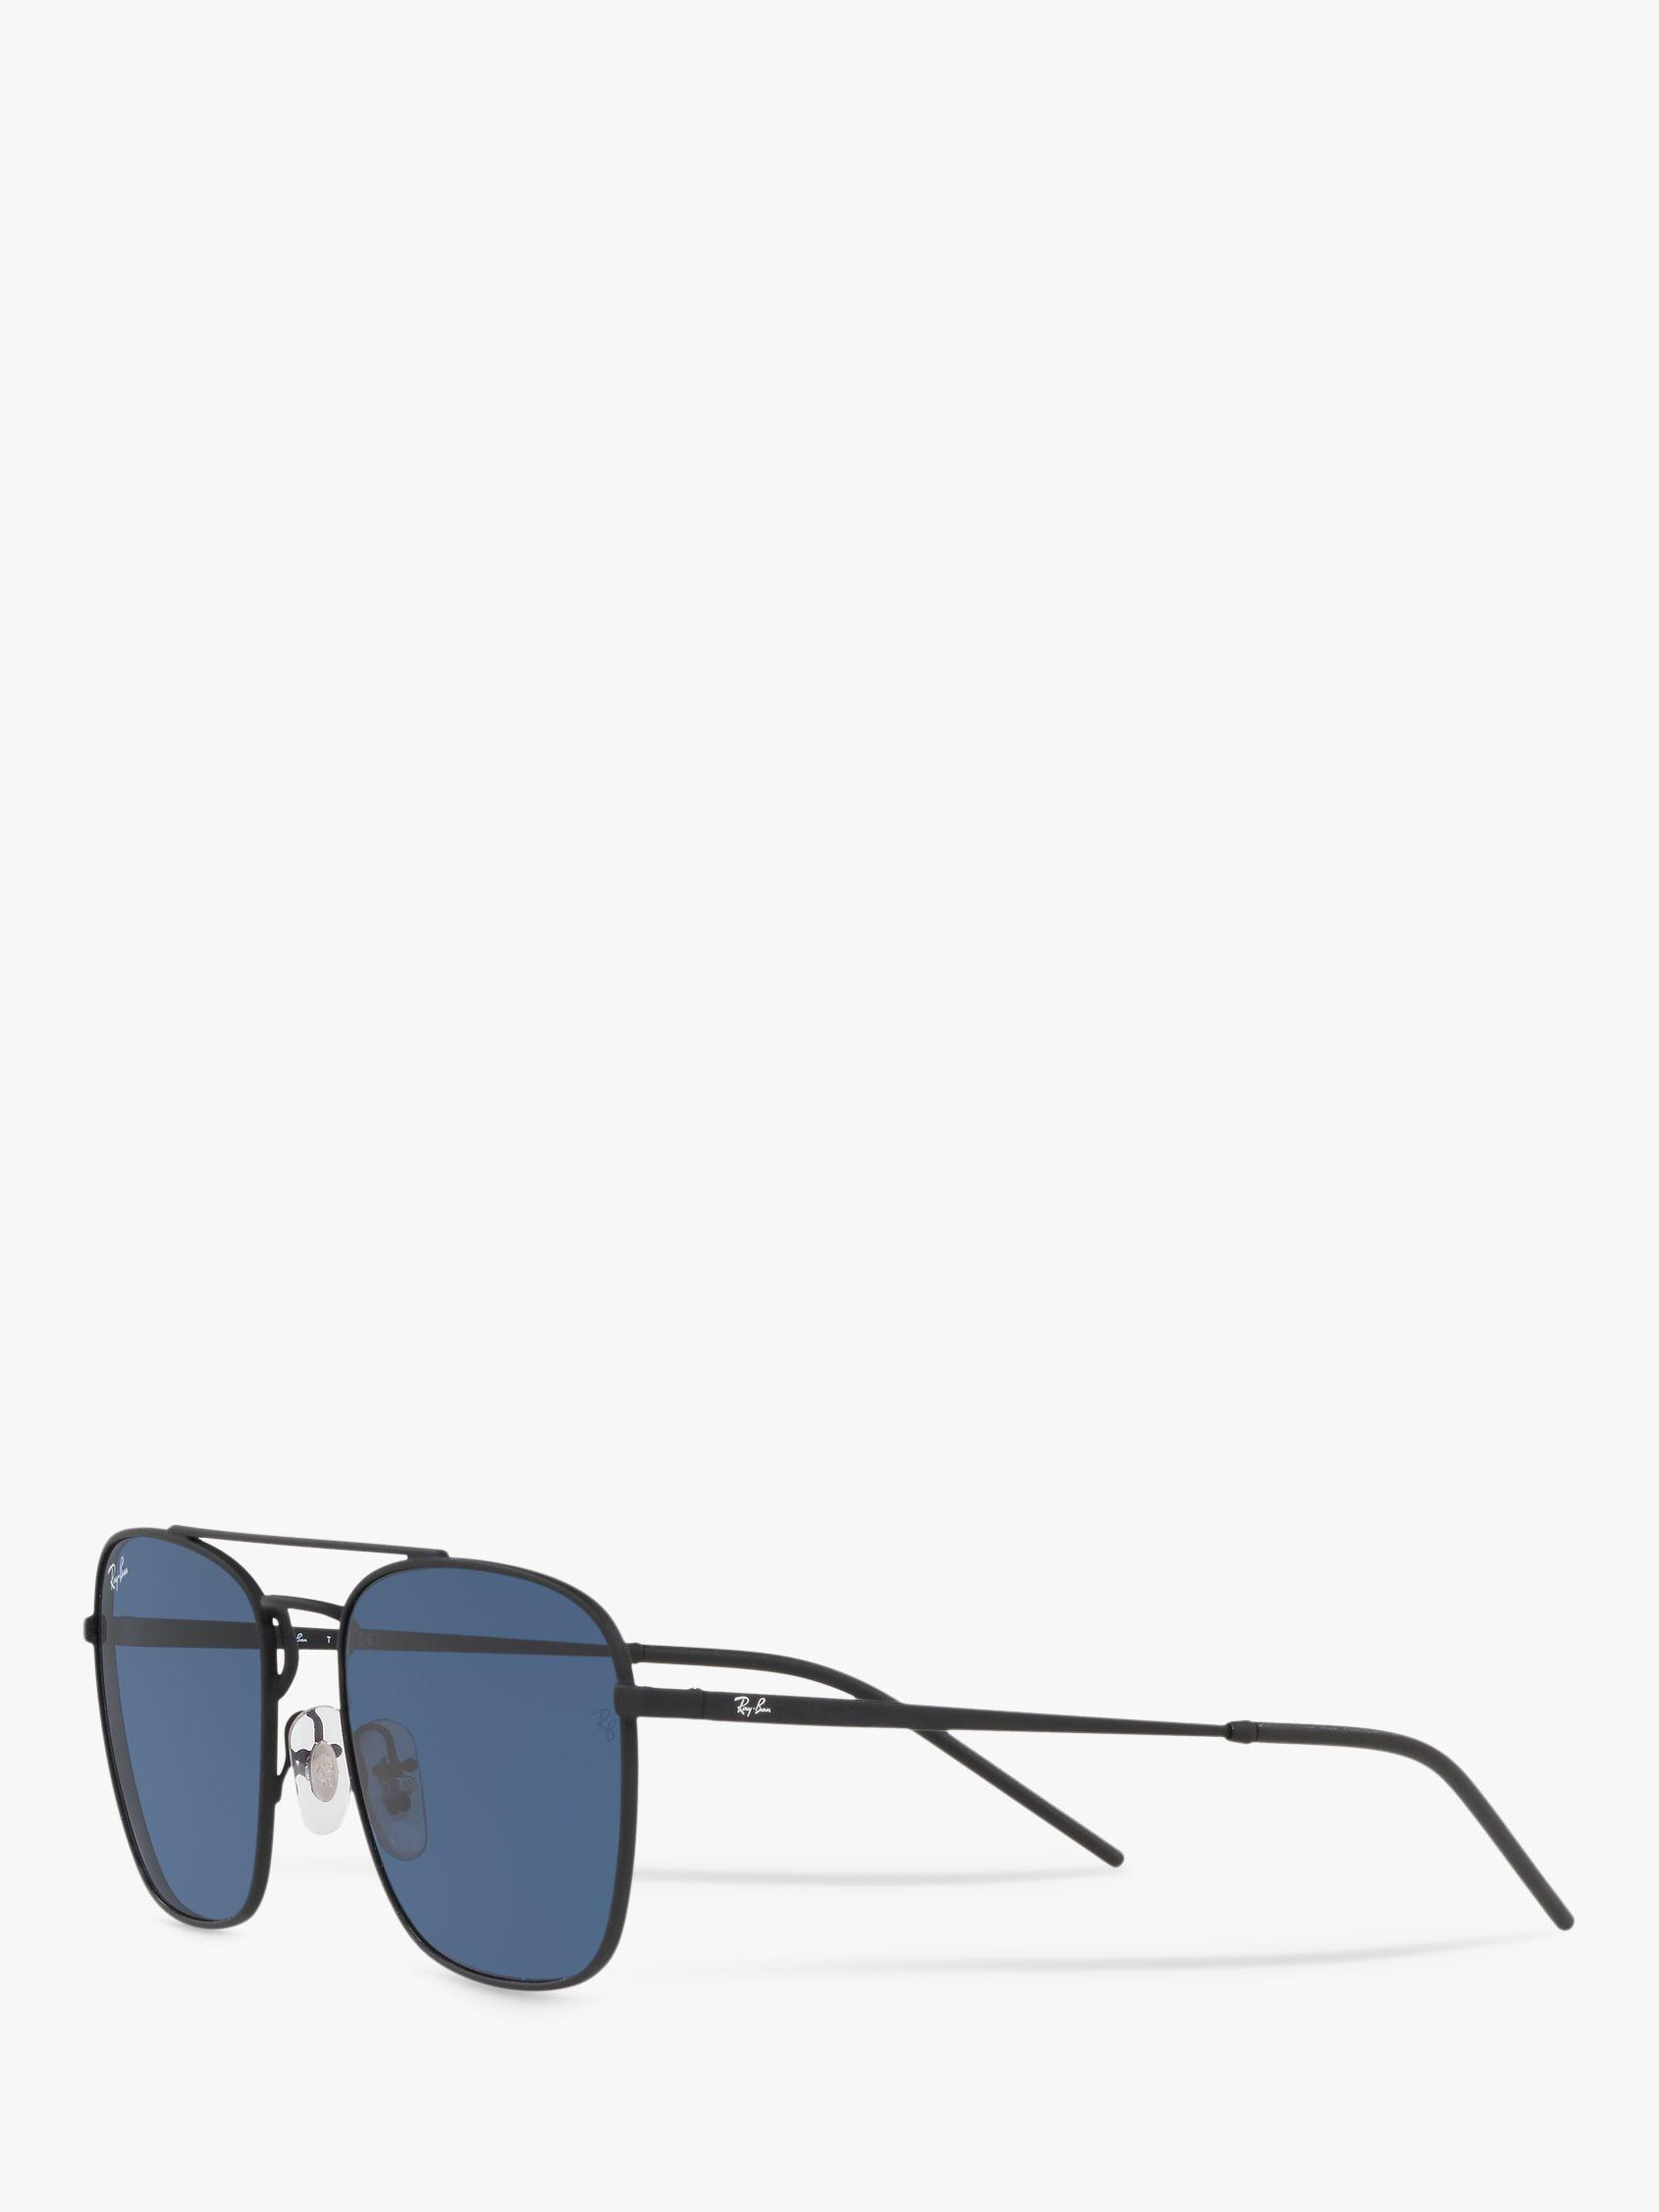 eb4b95c7c9 Ray-Ban Rb3588 Men s Square Sunglasses in Blue for Men - Lyst